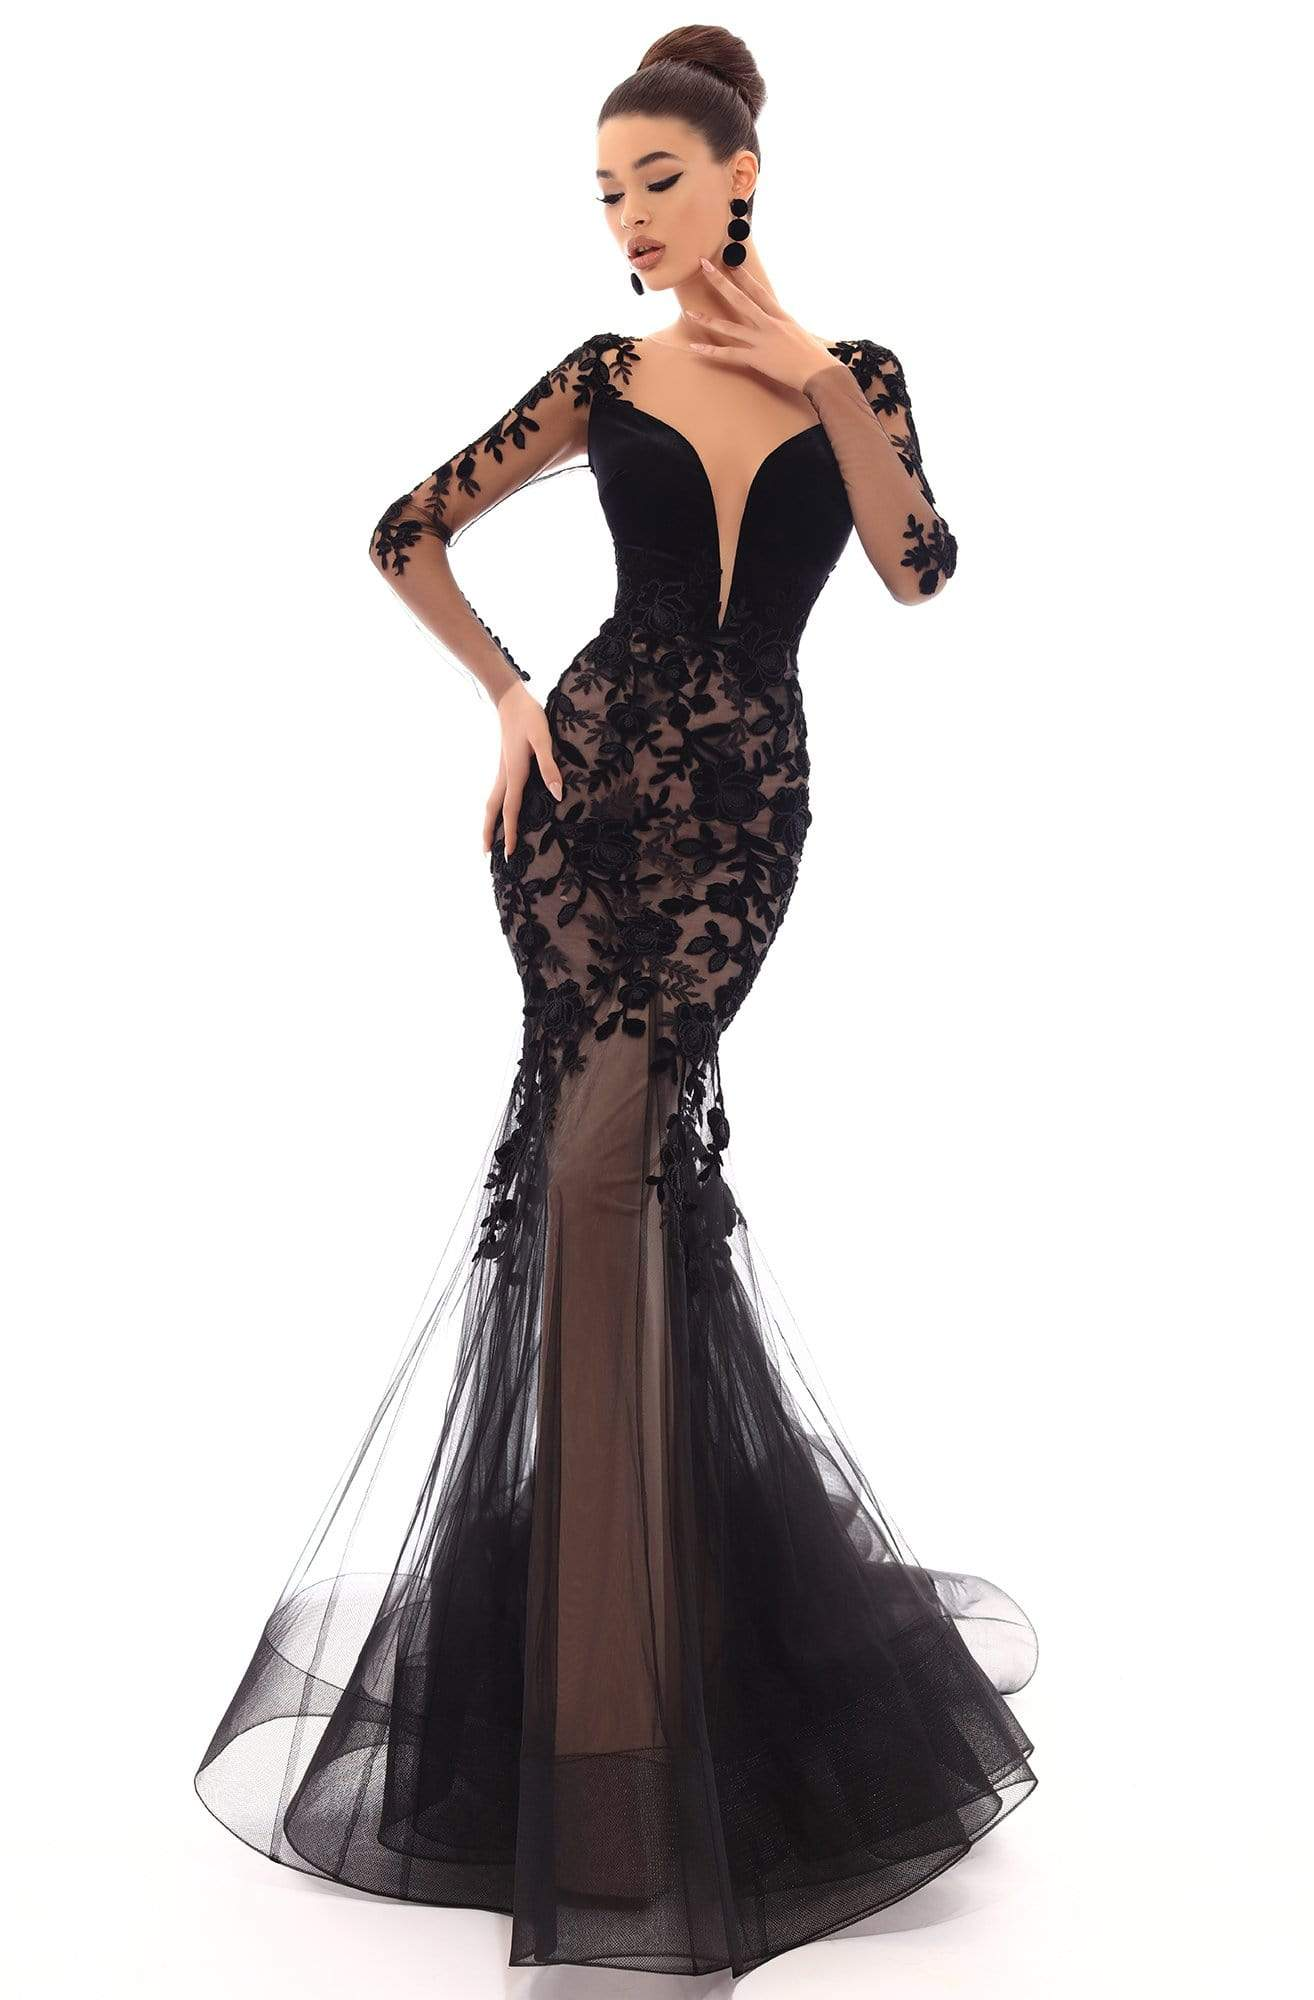 Tarik Ediz - 93656 Floral Applique Illusion Bateau Mermaid Dress in Black